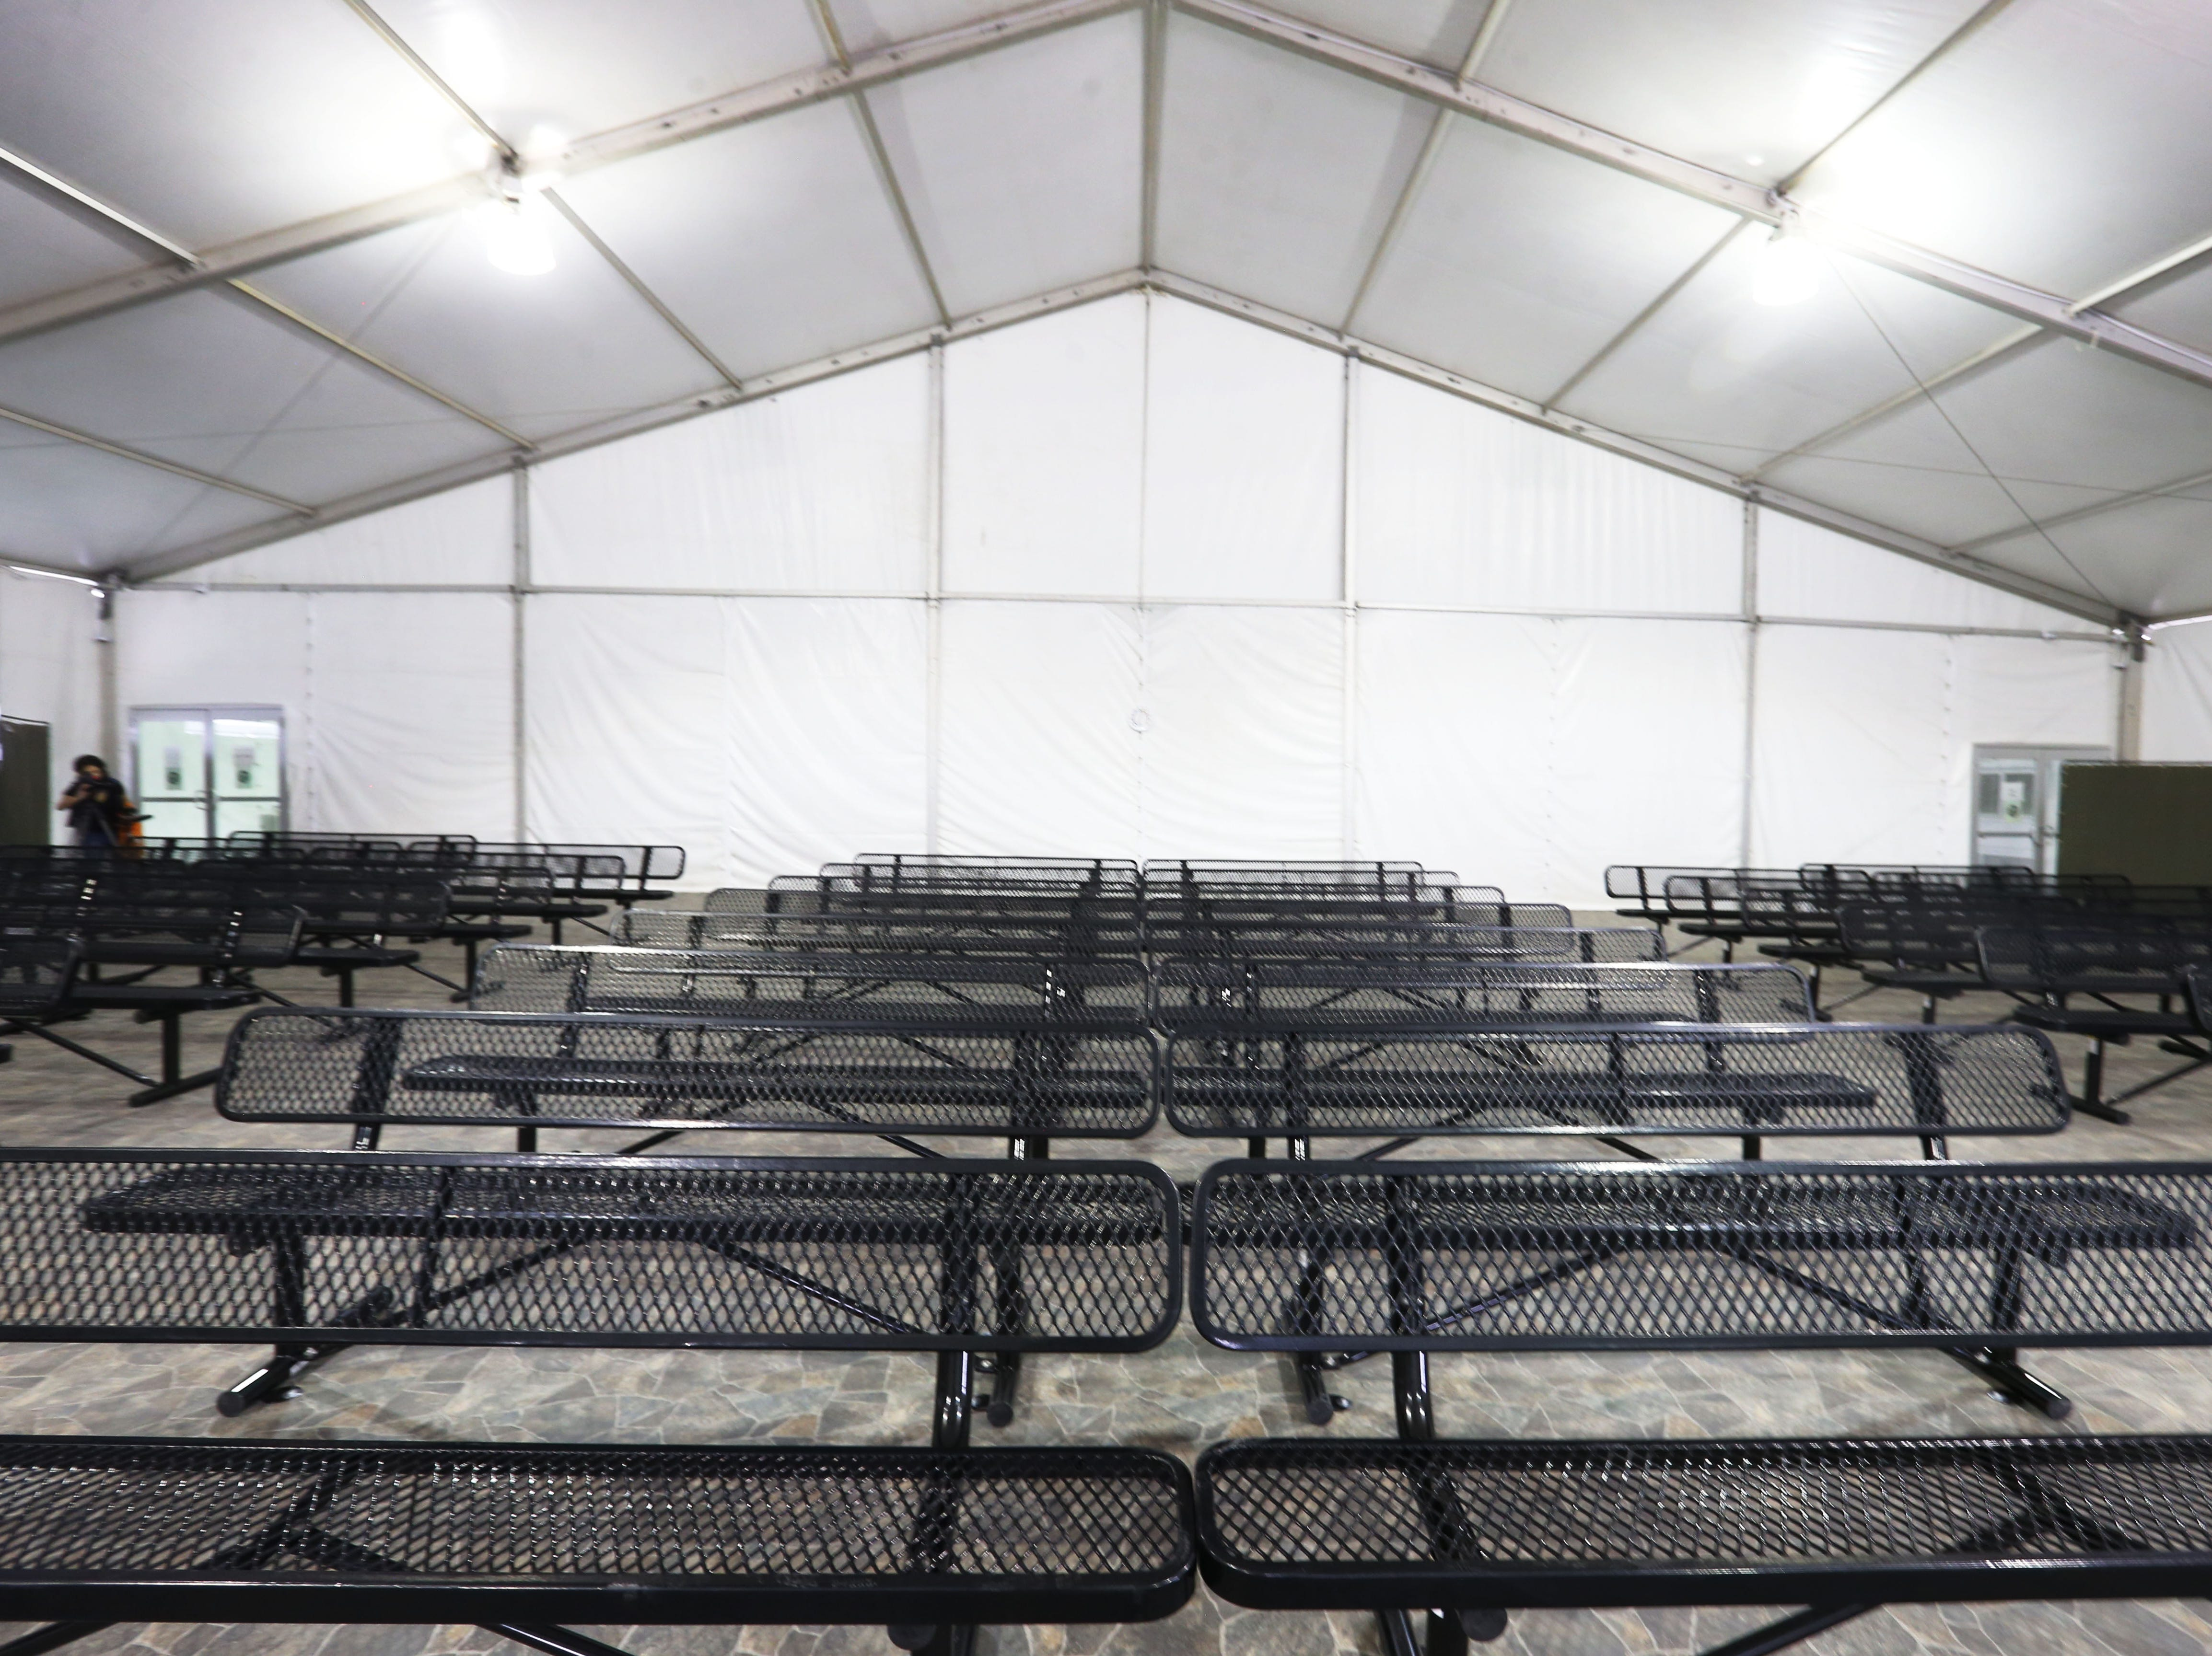 Border Patrol gives a media tour of a new temporary holding facility Thursday, May 2, located at 9201 Gateway S. Blvd. in El Paso. The 32,000 square foot facility is broken into four sections. Each section can hold 125 people.